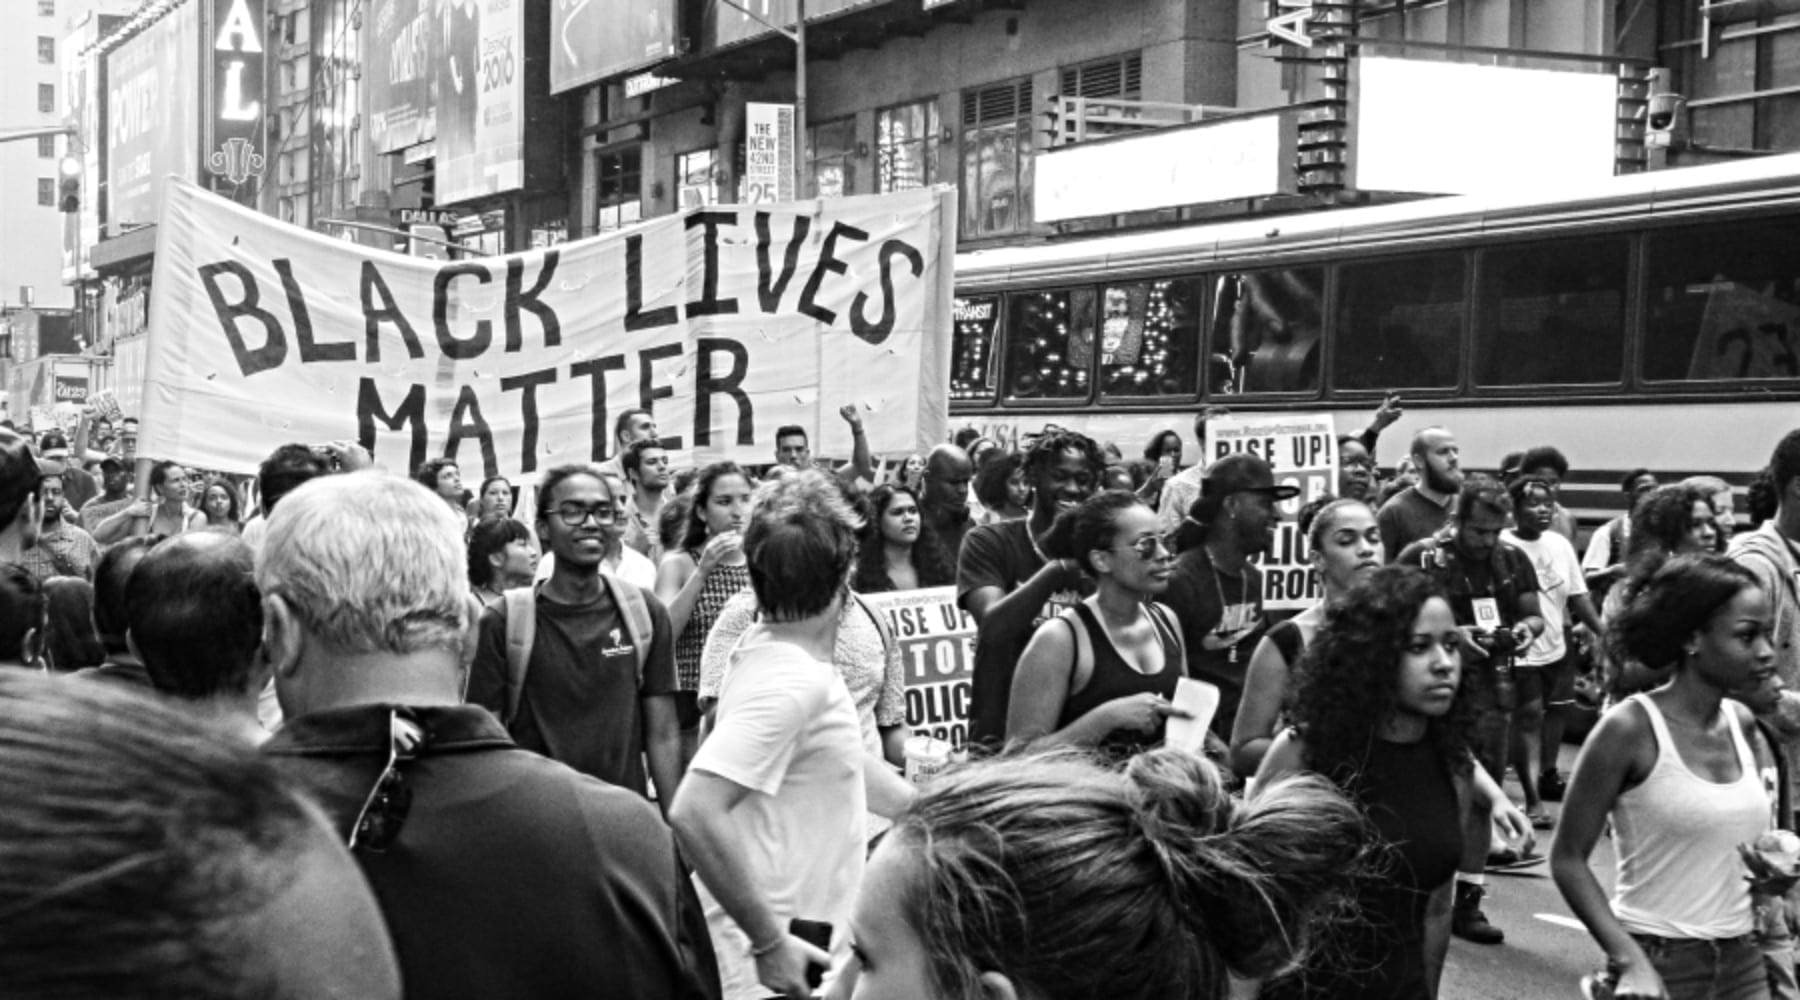 Celebrating Black Lives Matter on Martin Luther King Jr. Day